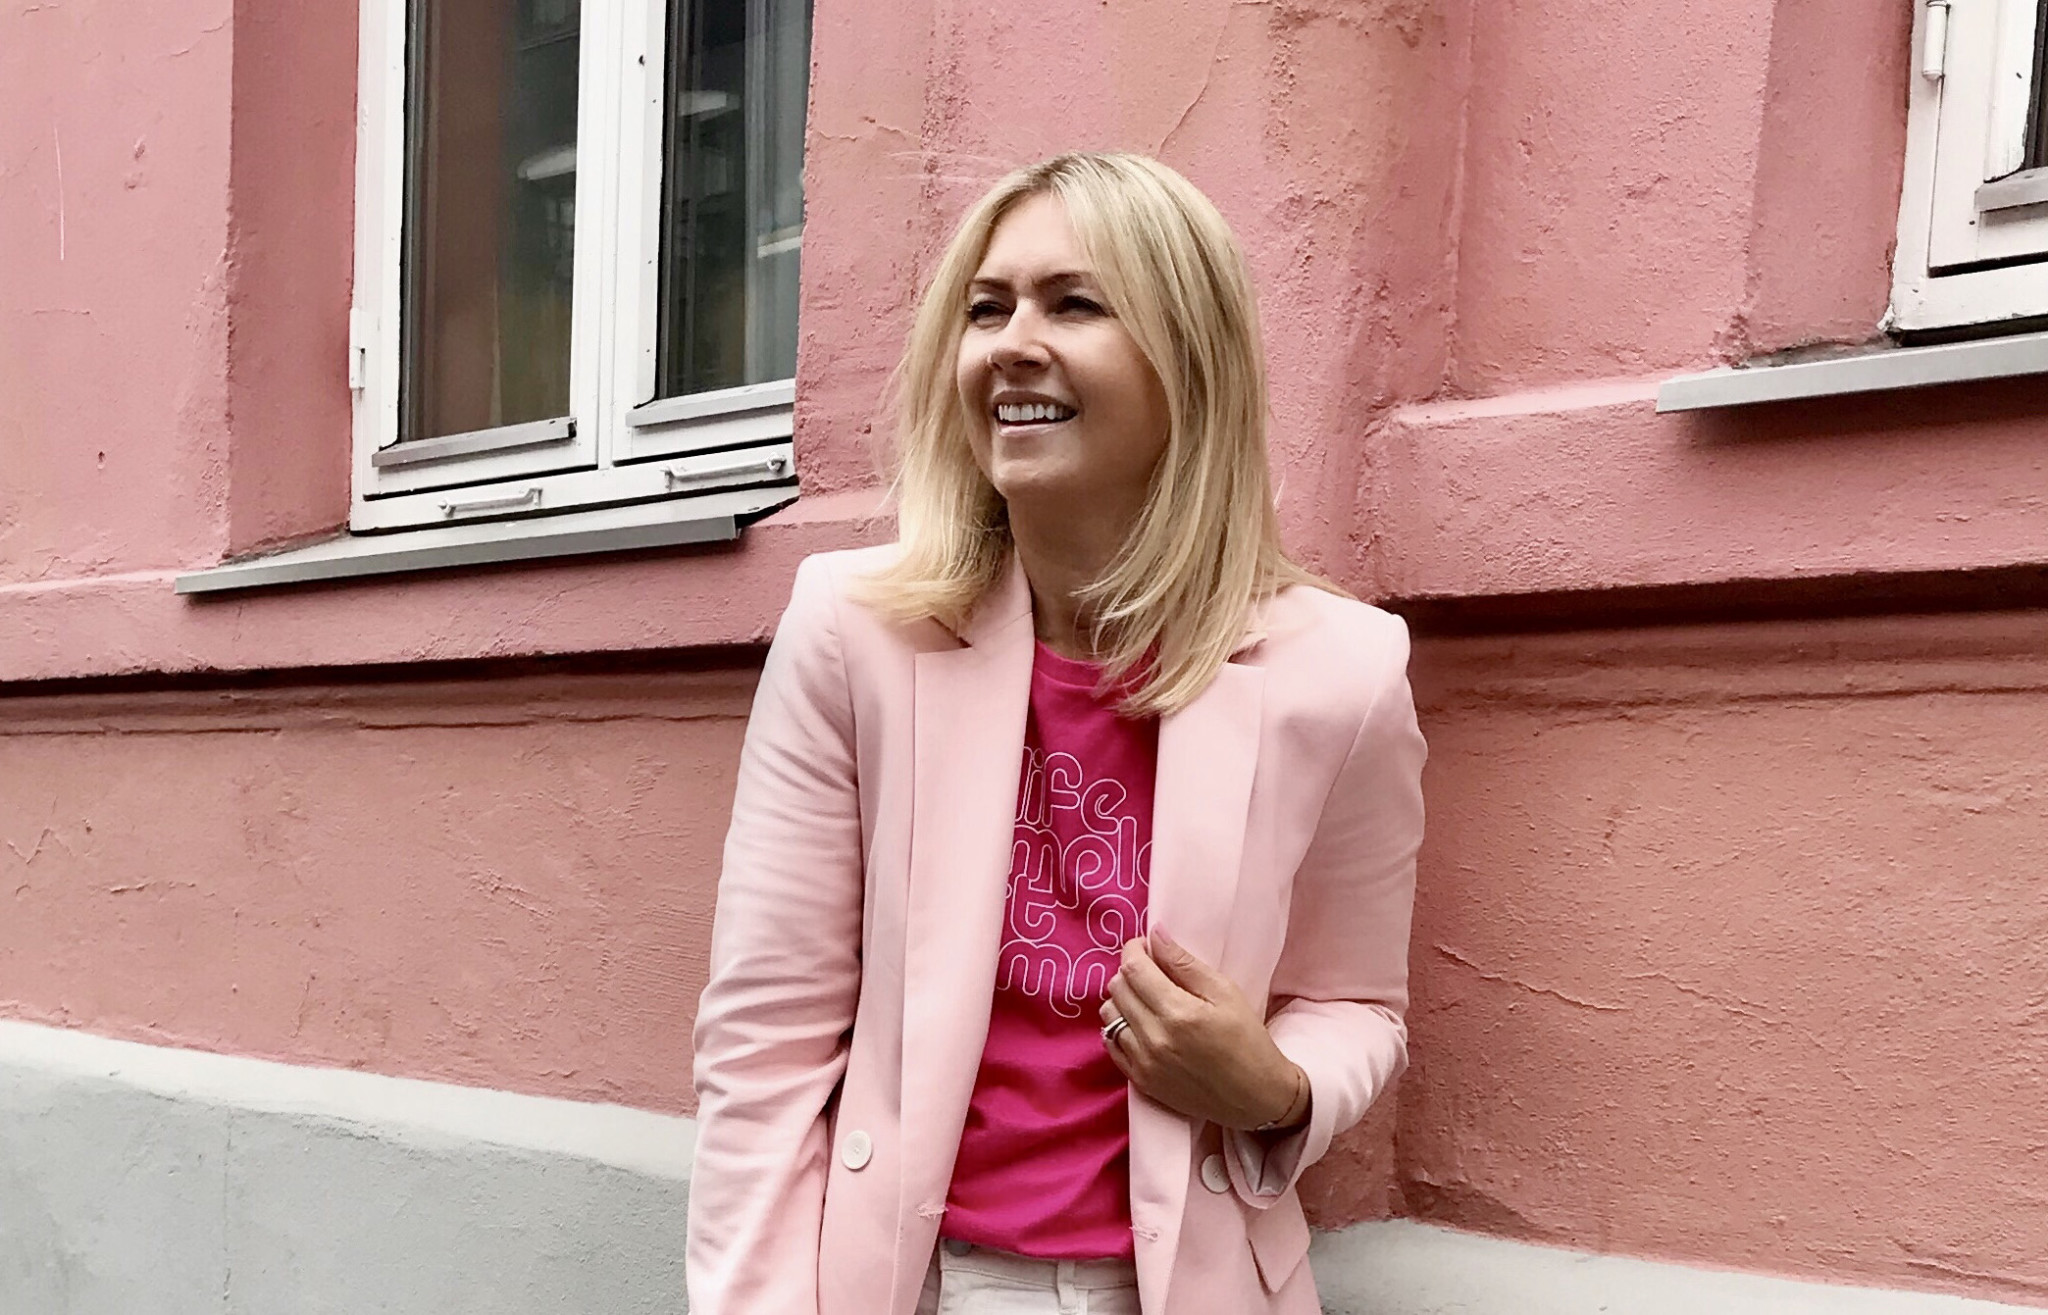 Back to work in pink